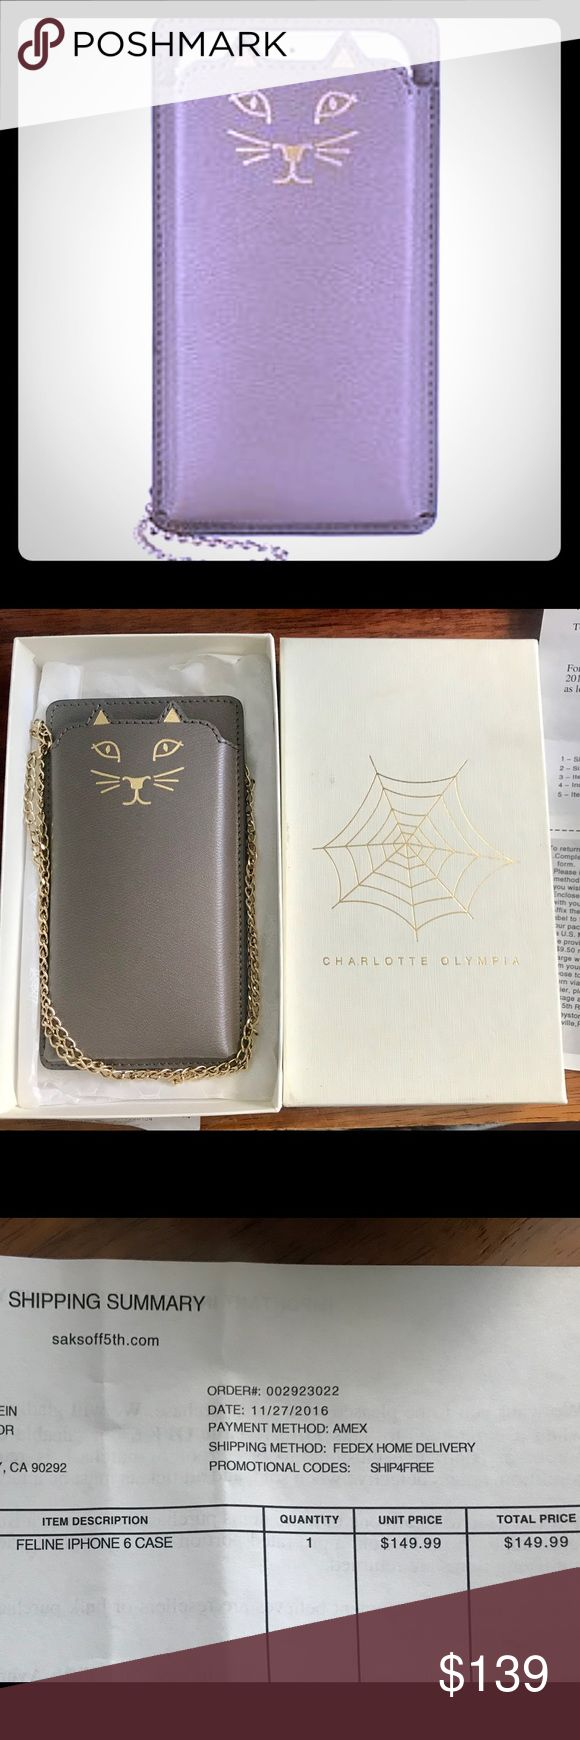 """CHARLOTTE OLYMPIA Feline IPhone 6 Leather IPhone 6 case with metallic cat prints, Removable chain shoulder strap 21"""" drop ,Leather lining 3.25""""W 6"""" H 0.5""""D Leather made in ITALY.New with box and receipts for authenticity. Perfect Holliday gift 🎁 Charlotte Olympia Accessories Phone Cases"""